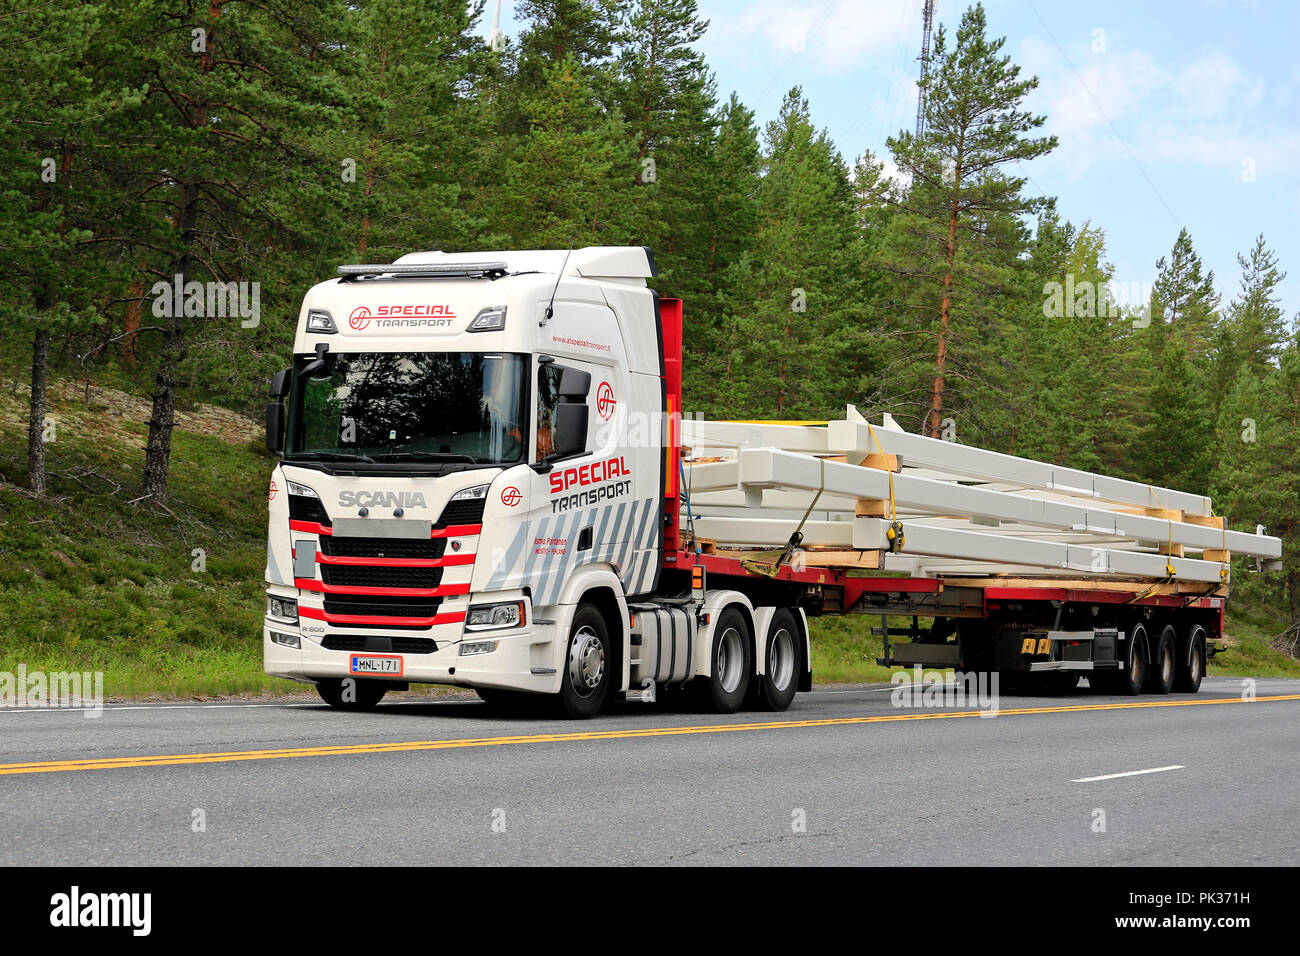 Next Generation Scania R500 of Ismo Partanen for AT Special Transport hauls oversize industrial object on road. Ikaalinen, Finland - August 9, 2018. - Stock Image